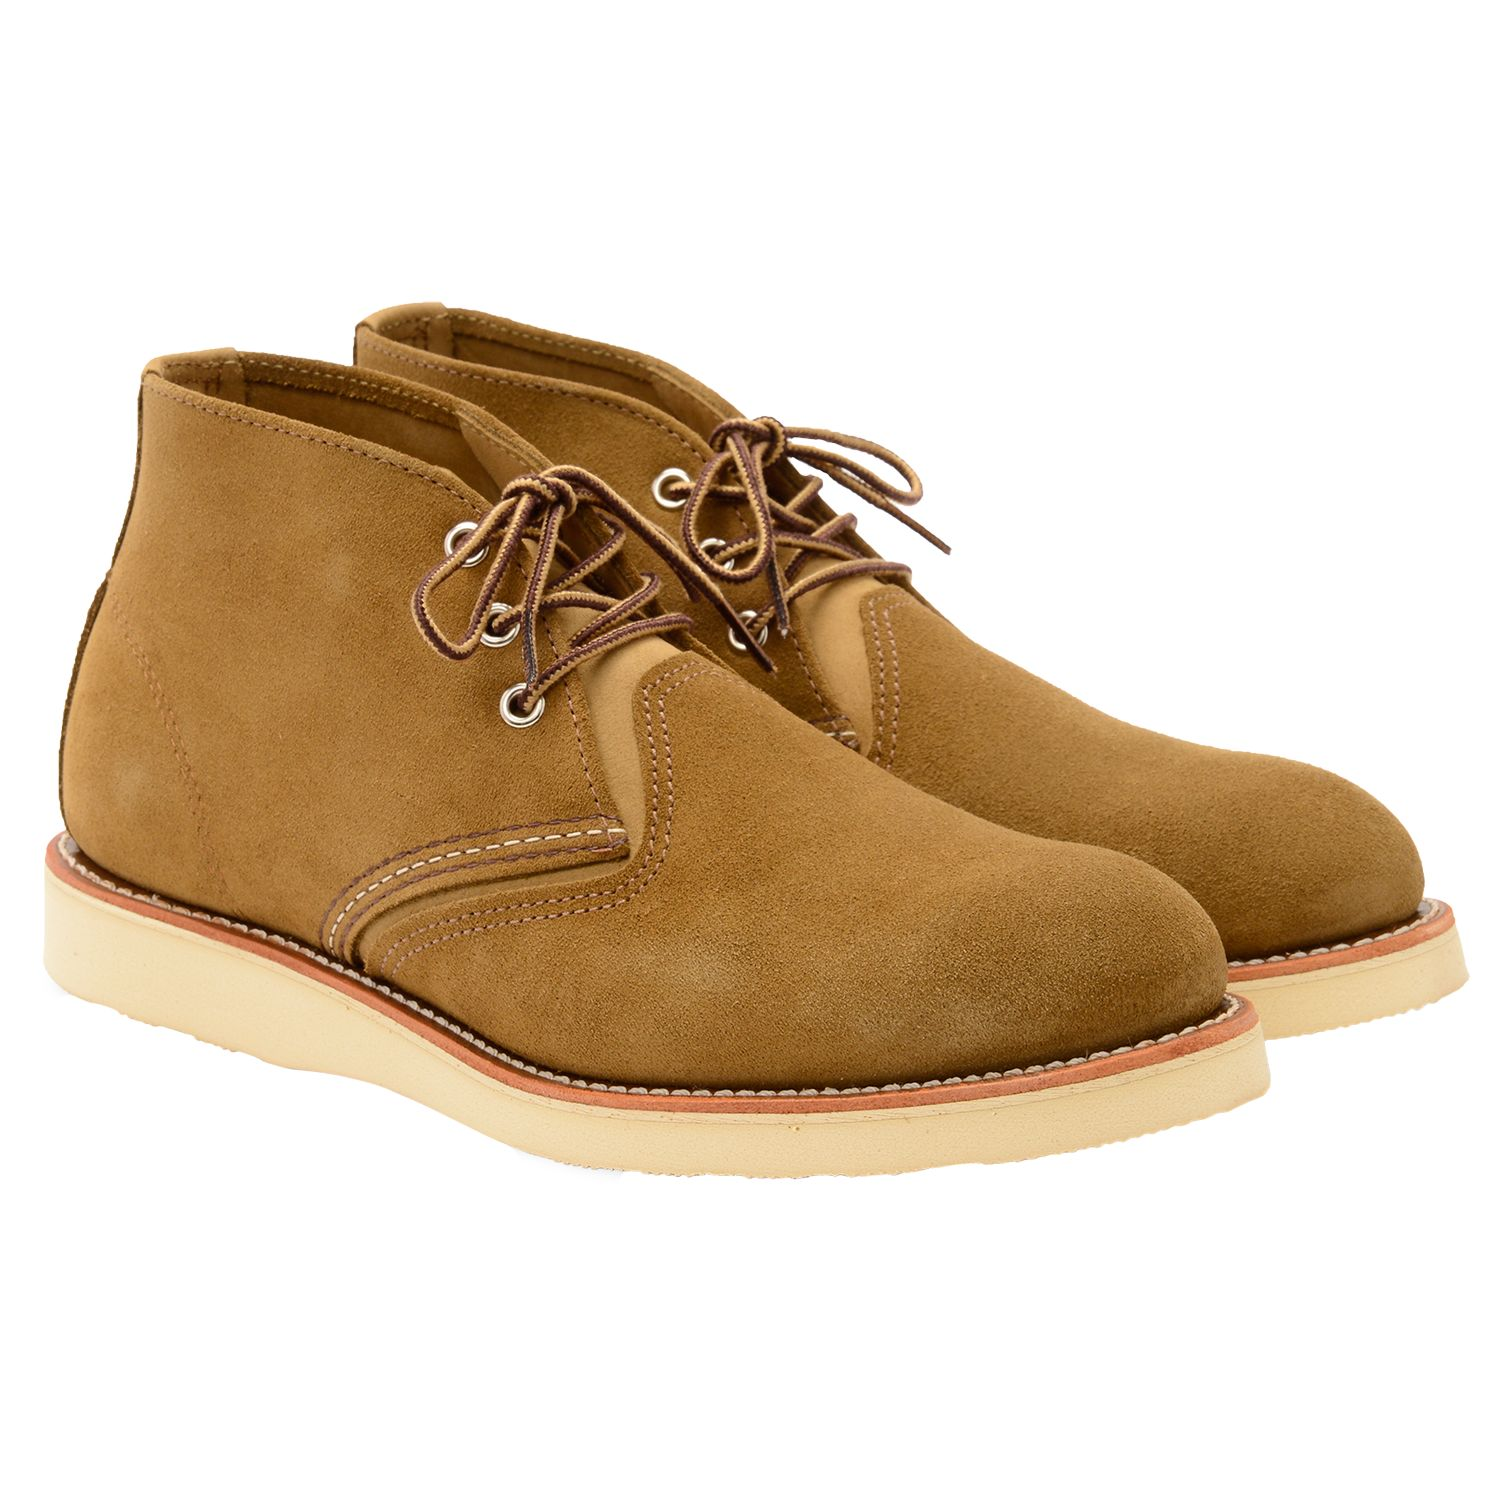 Red Wing Red Wing 3141 Work Chukka Boot, Olive Mohave